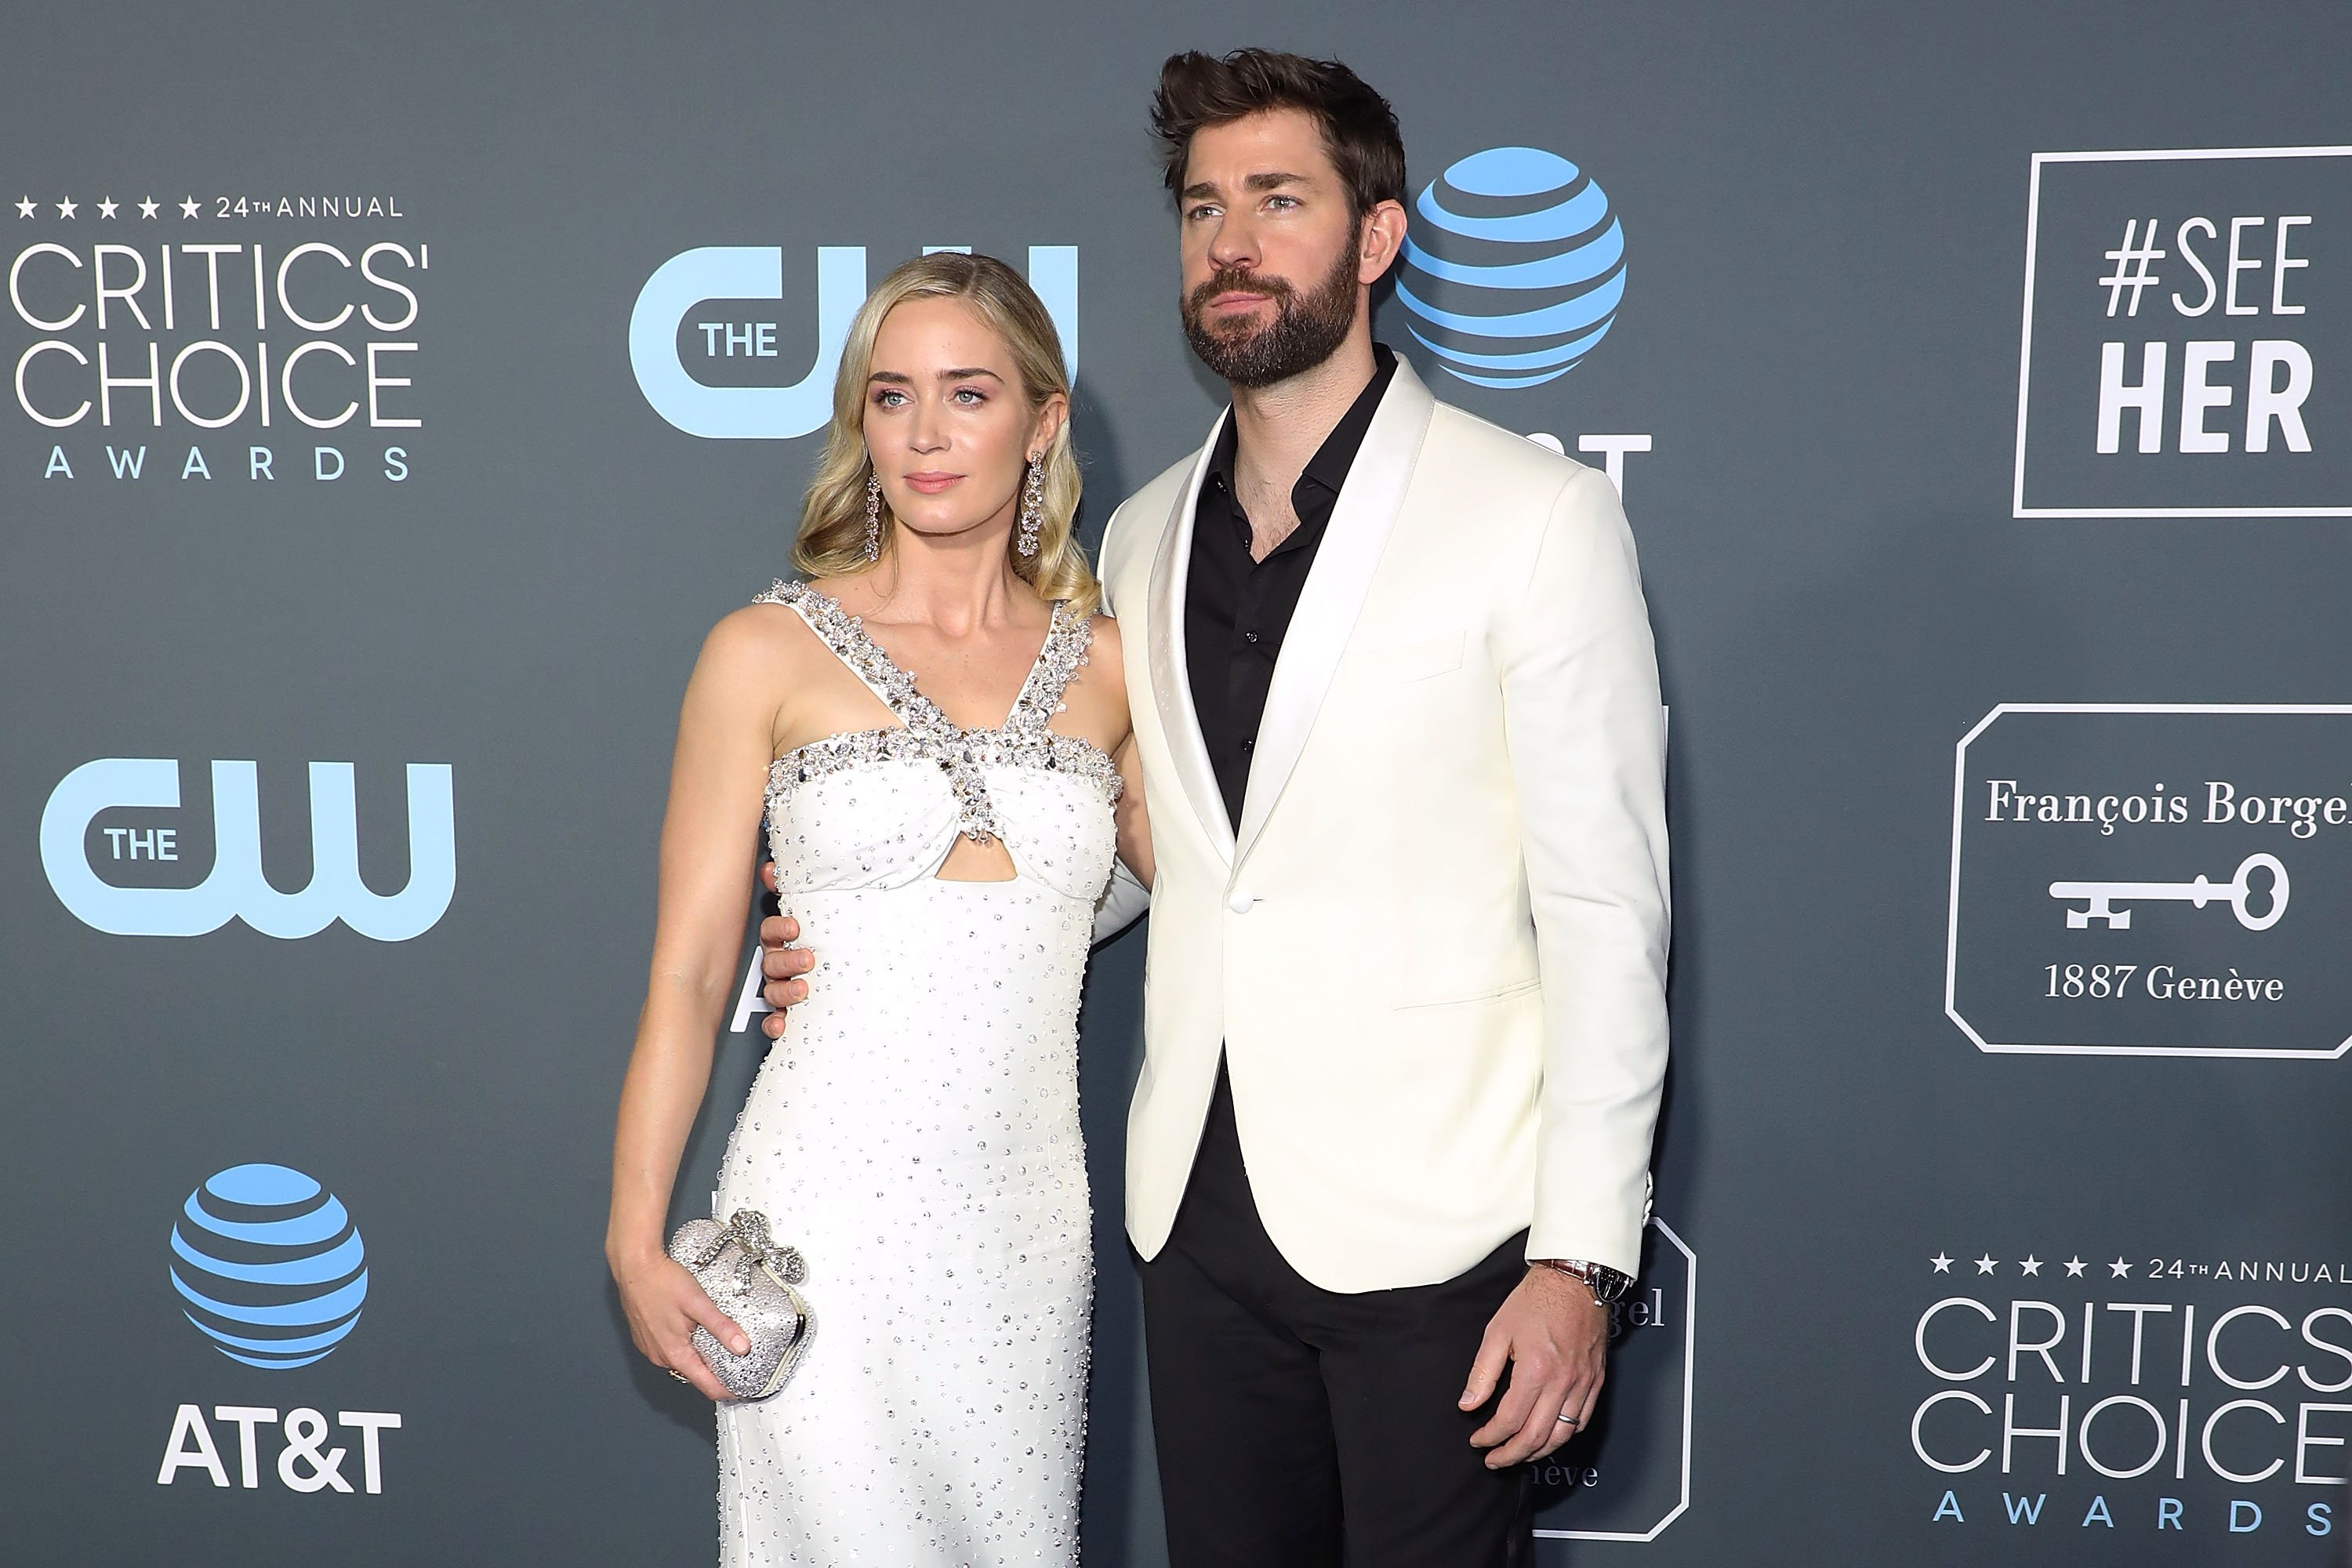 Emily Blunt and John Krasinski pictured at The 24th Annual Critics' Choice Awards, 2019, California. | Photo: Getty Images